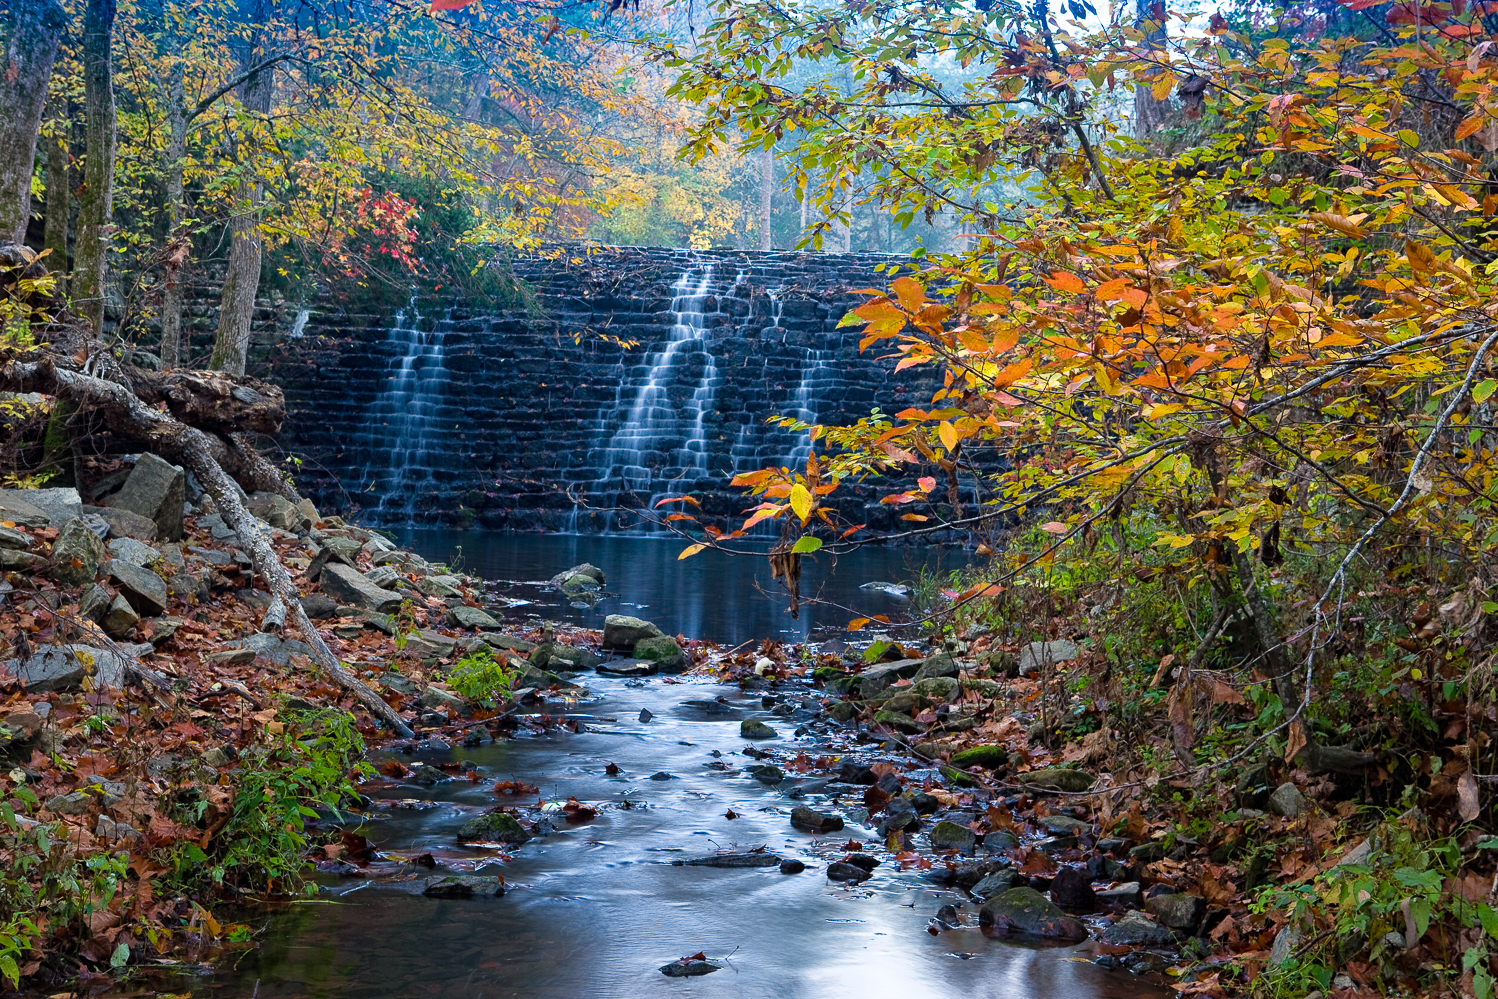 Fall view of Gunner Pool CCC dam at Gunner Pool Campground